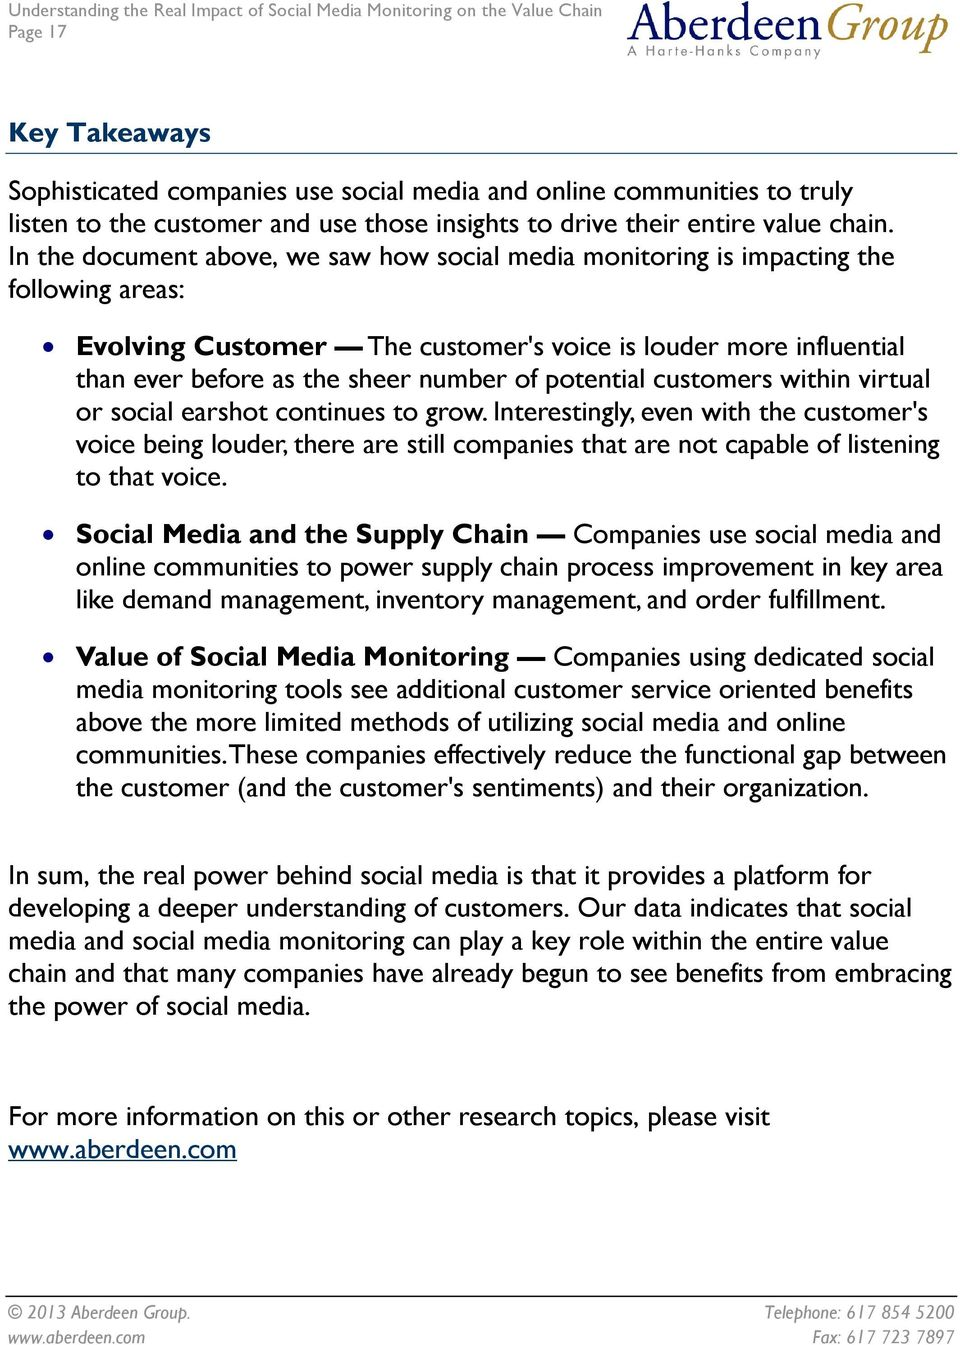 potential customers within virtual or social earshot continues to grow.